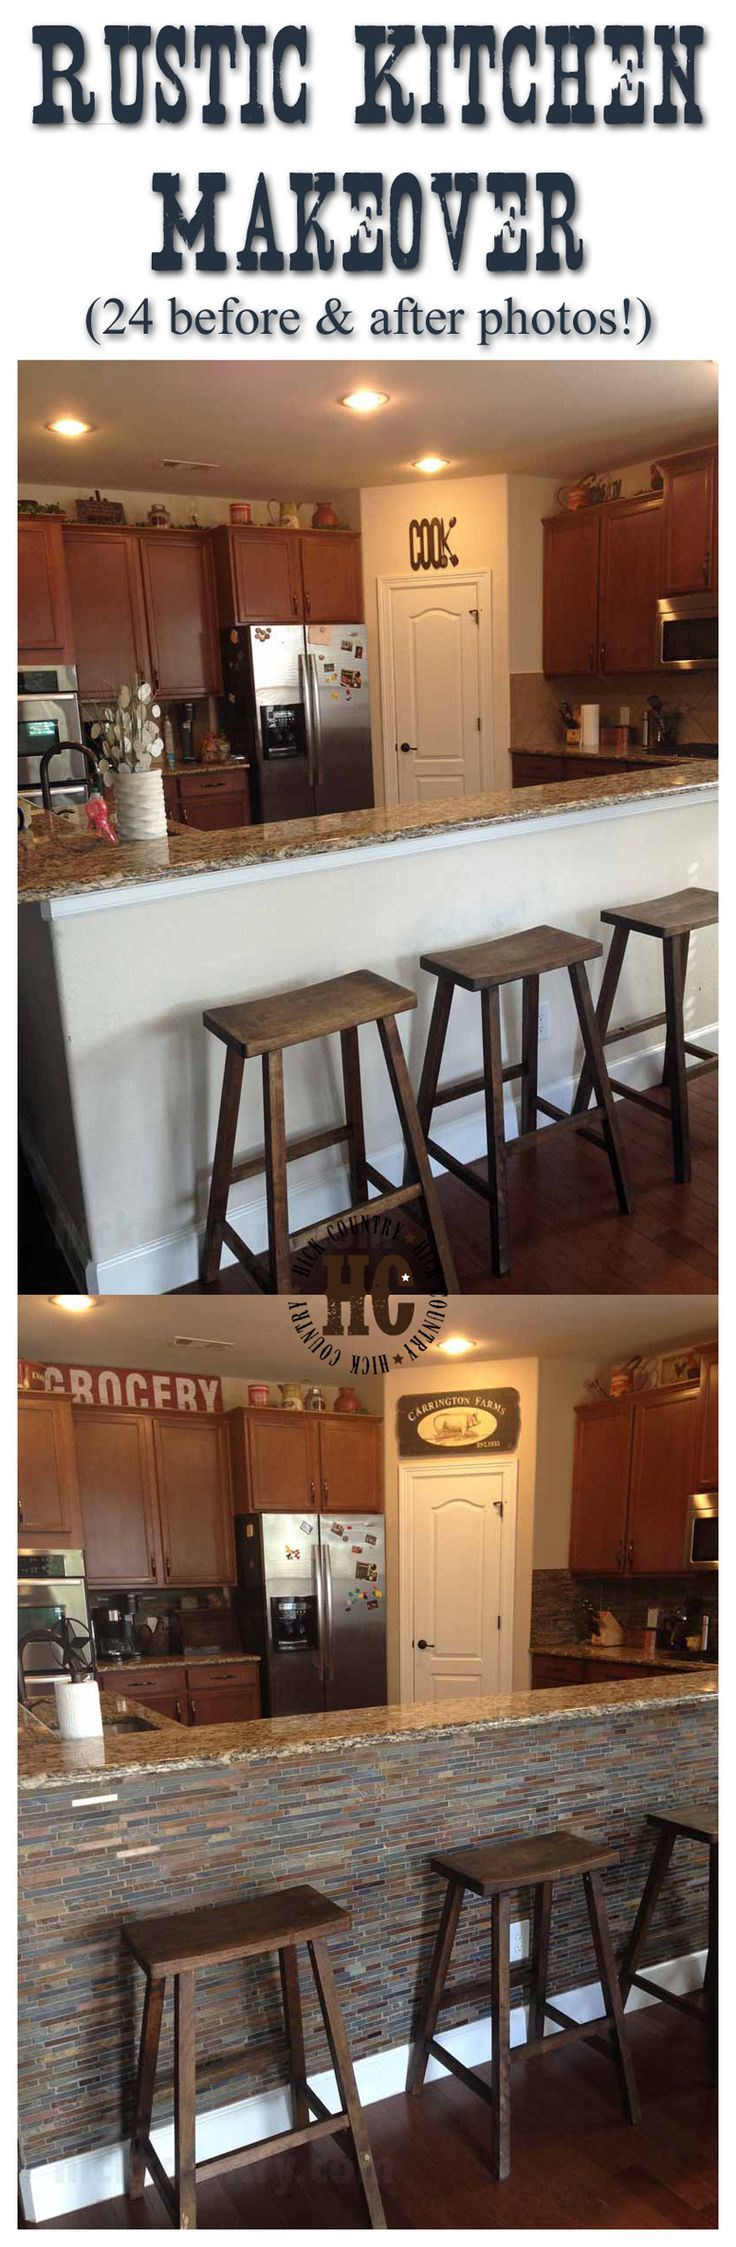 Rustic Kitchen Makeover View Before And After Photos